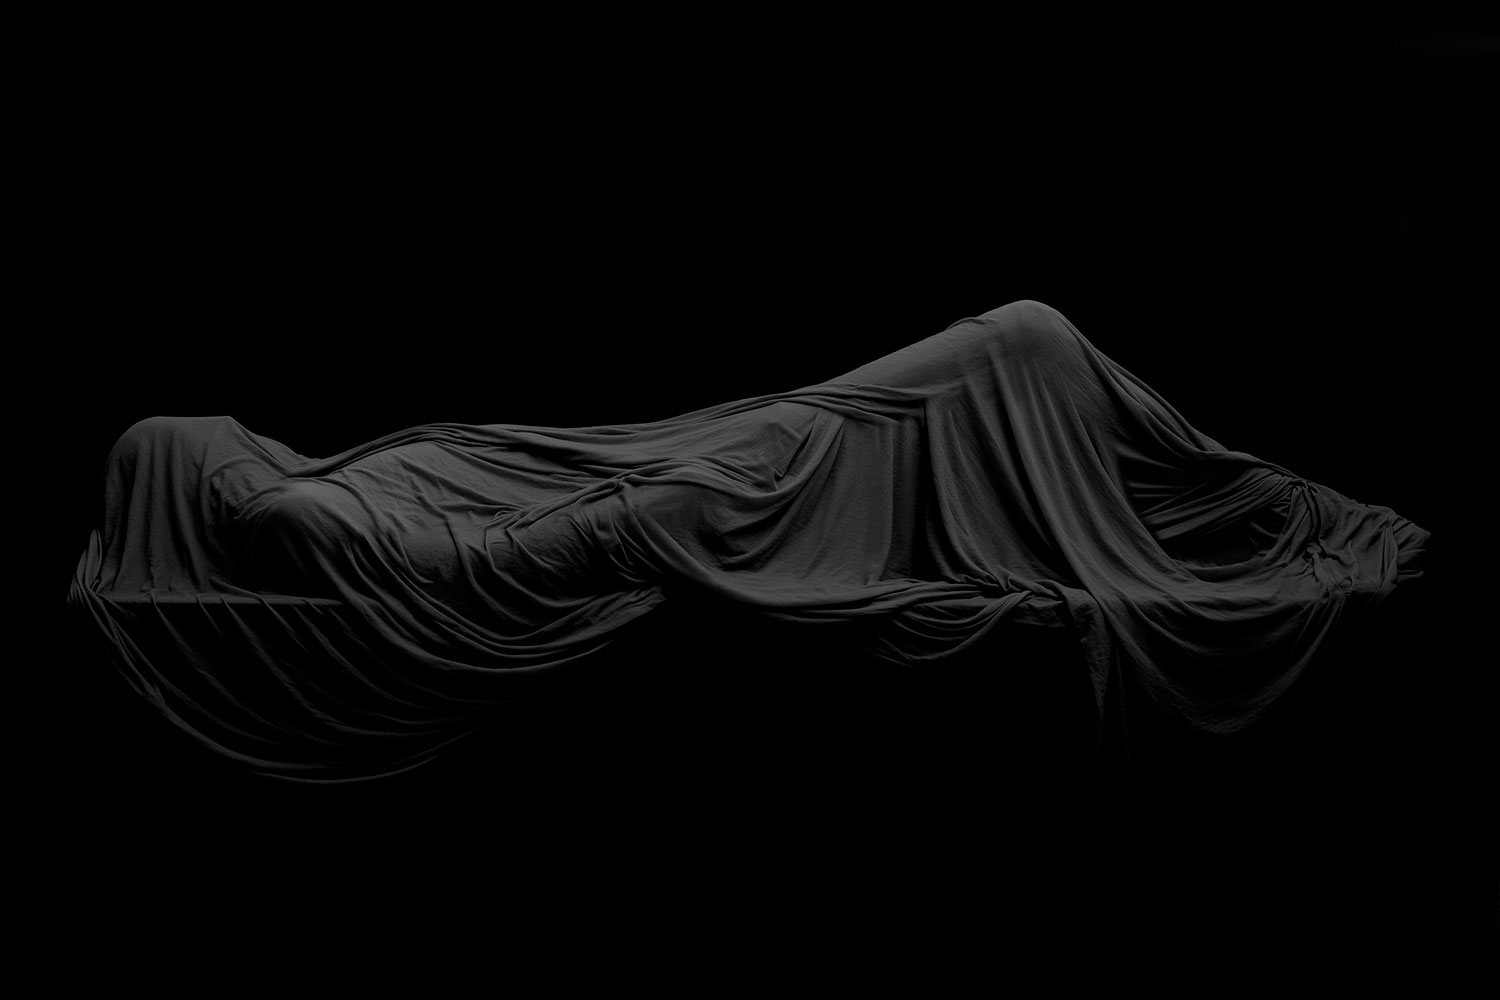 Photo by Nicholas Alan Cope & Dustin Edward Arnold | Yellowtrace.